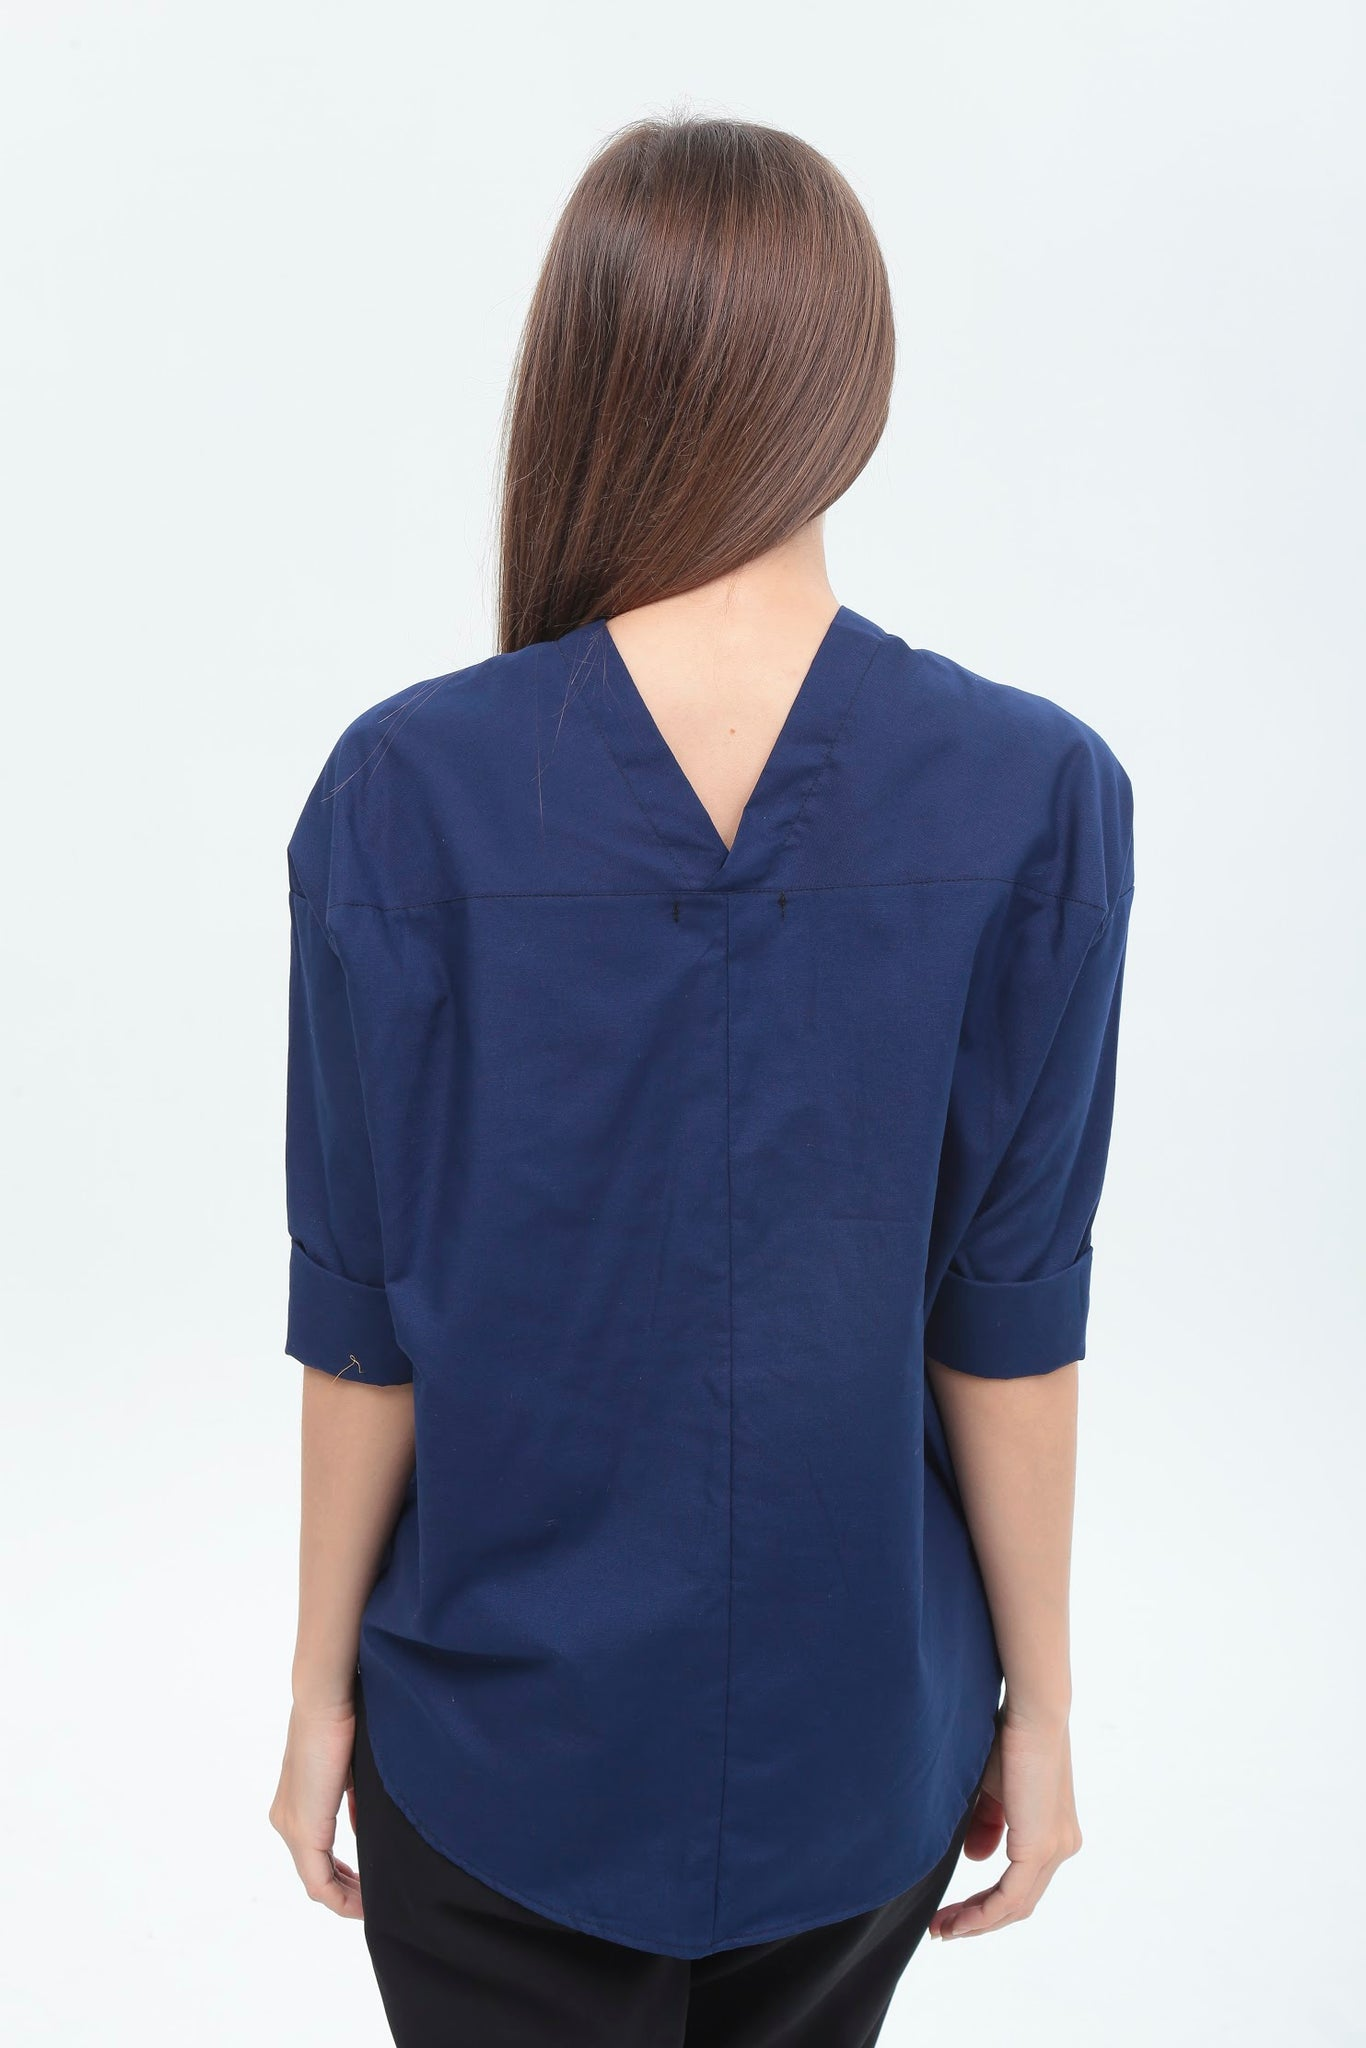 Amelia Top in Navy Blue